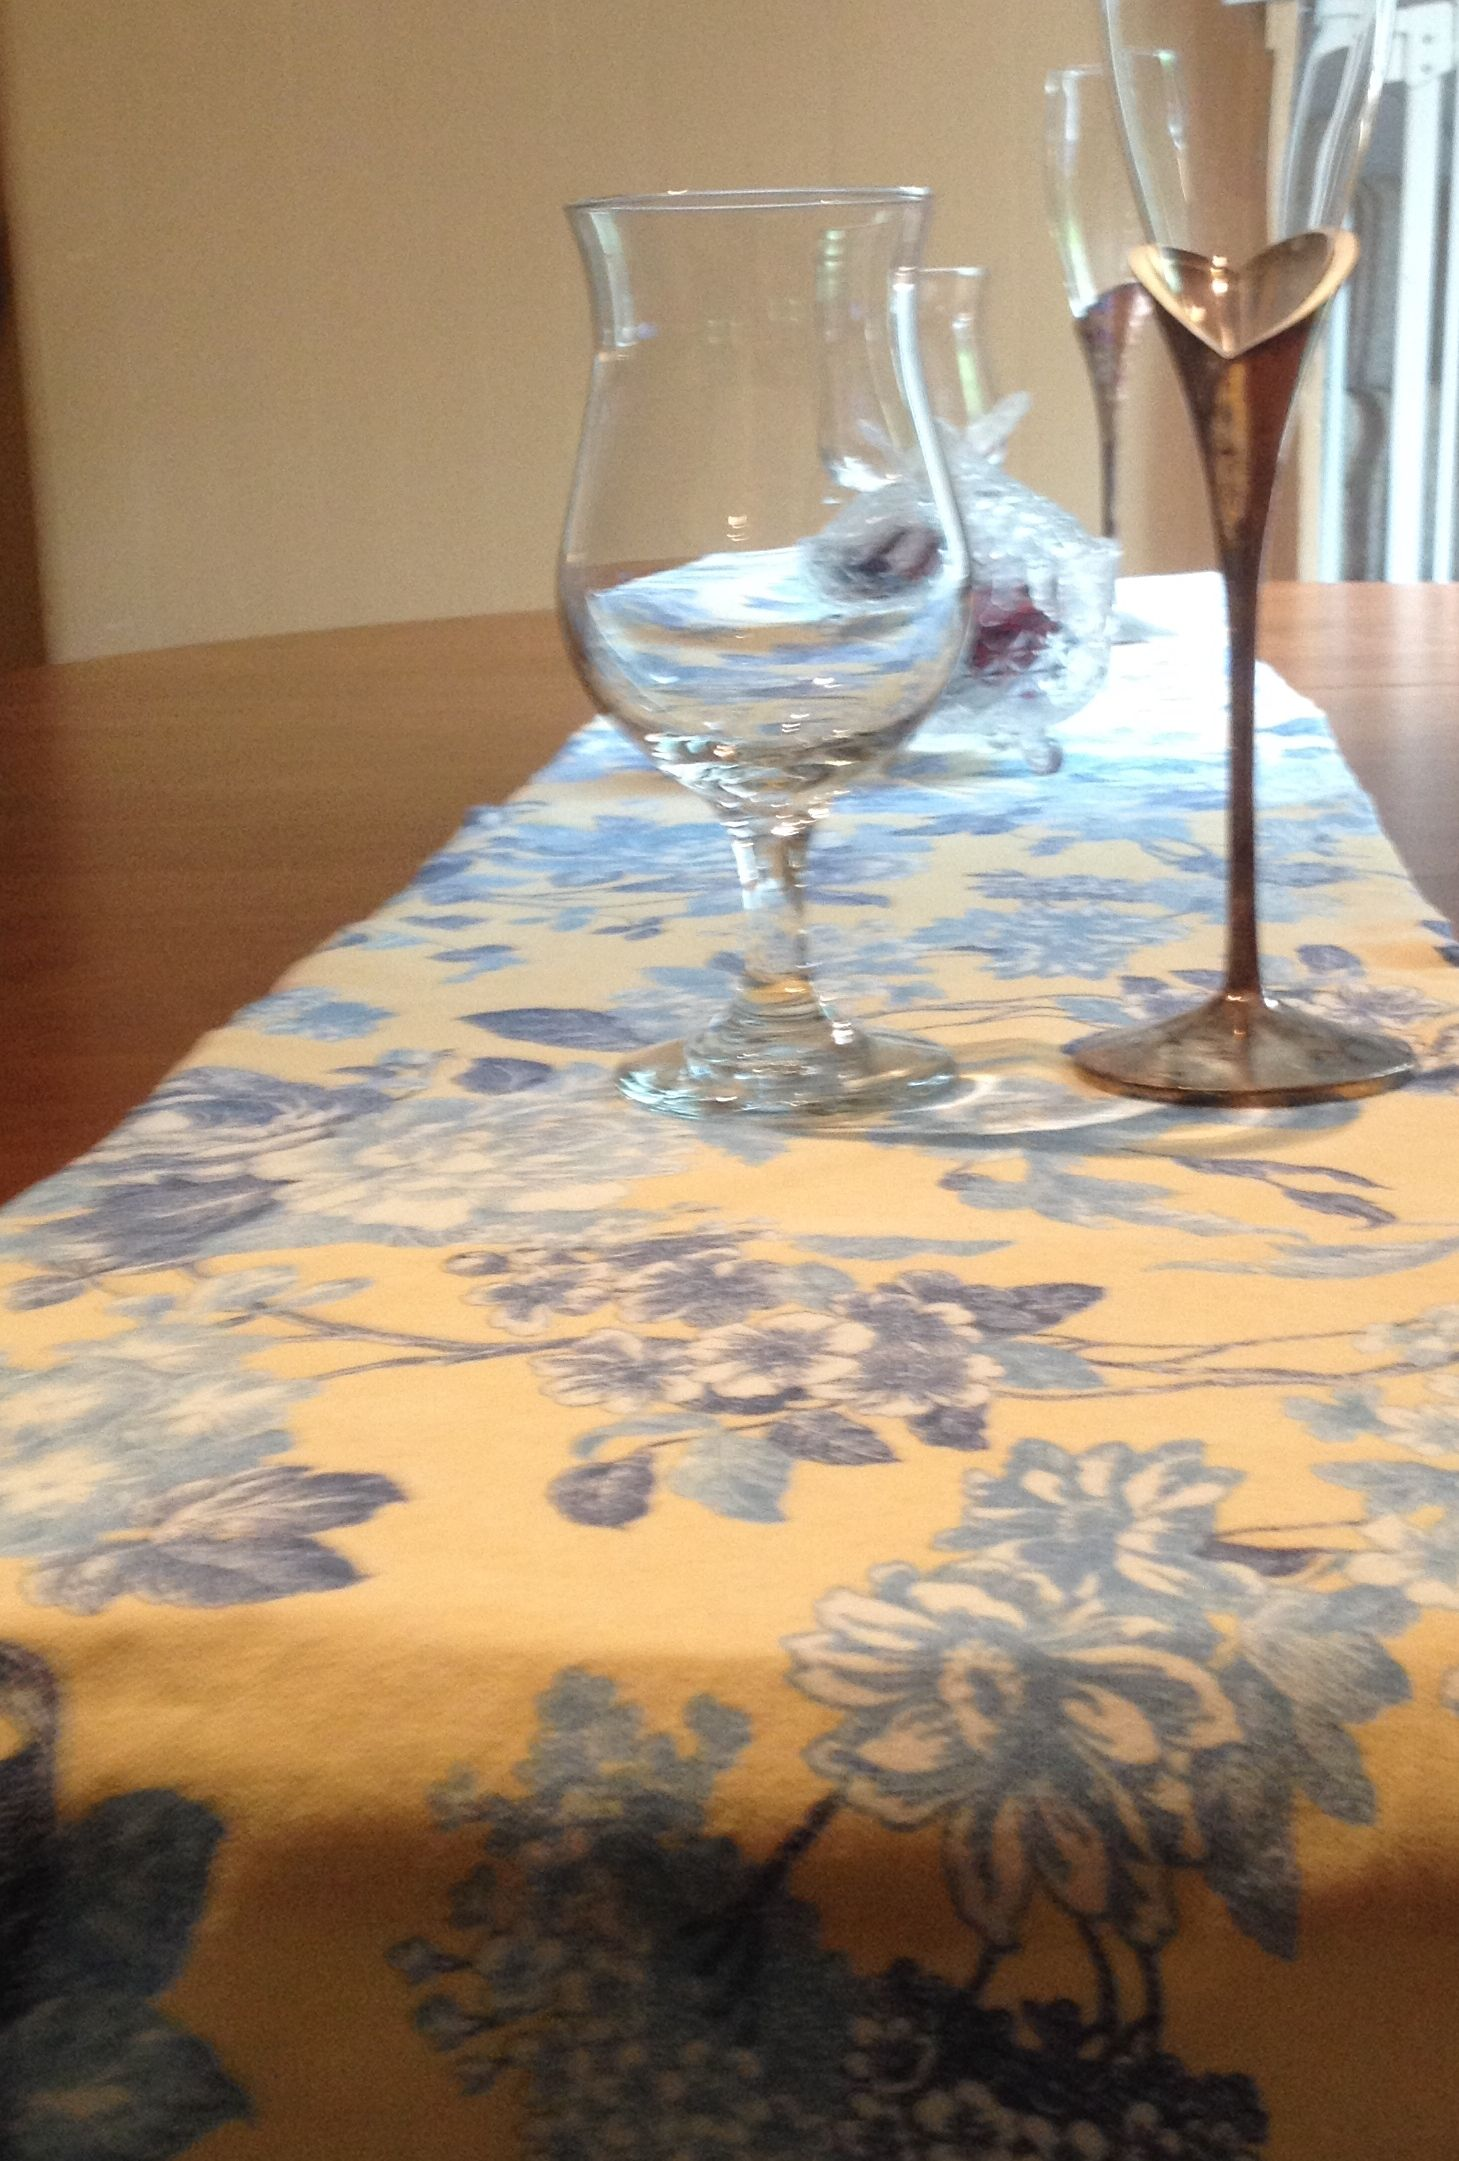 Ordinaire French Country Table Runner In Yellow With Blue And White Flowers. With  Town Houses,